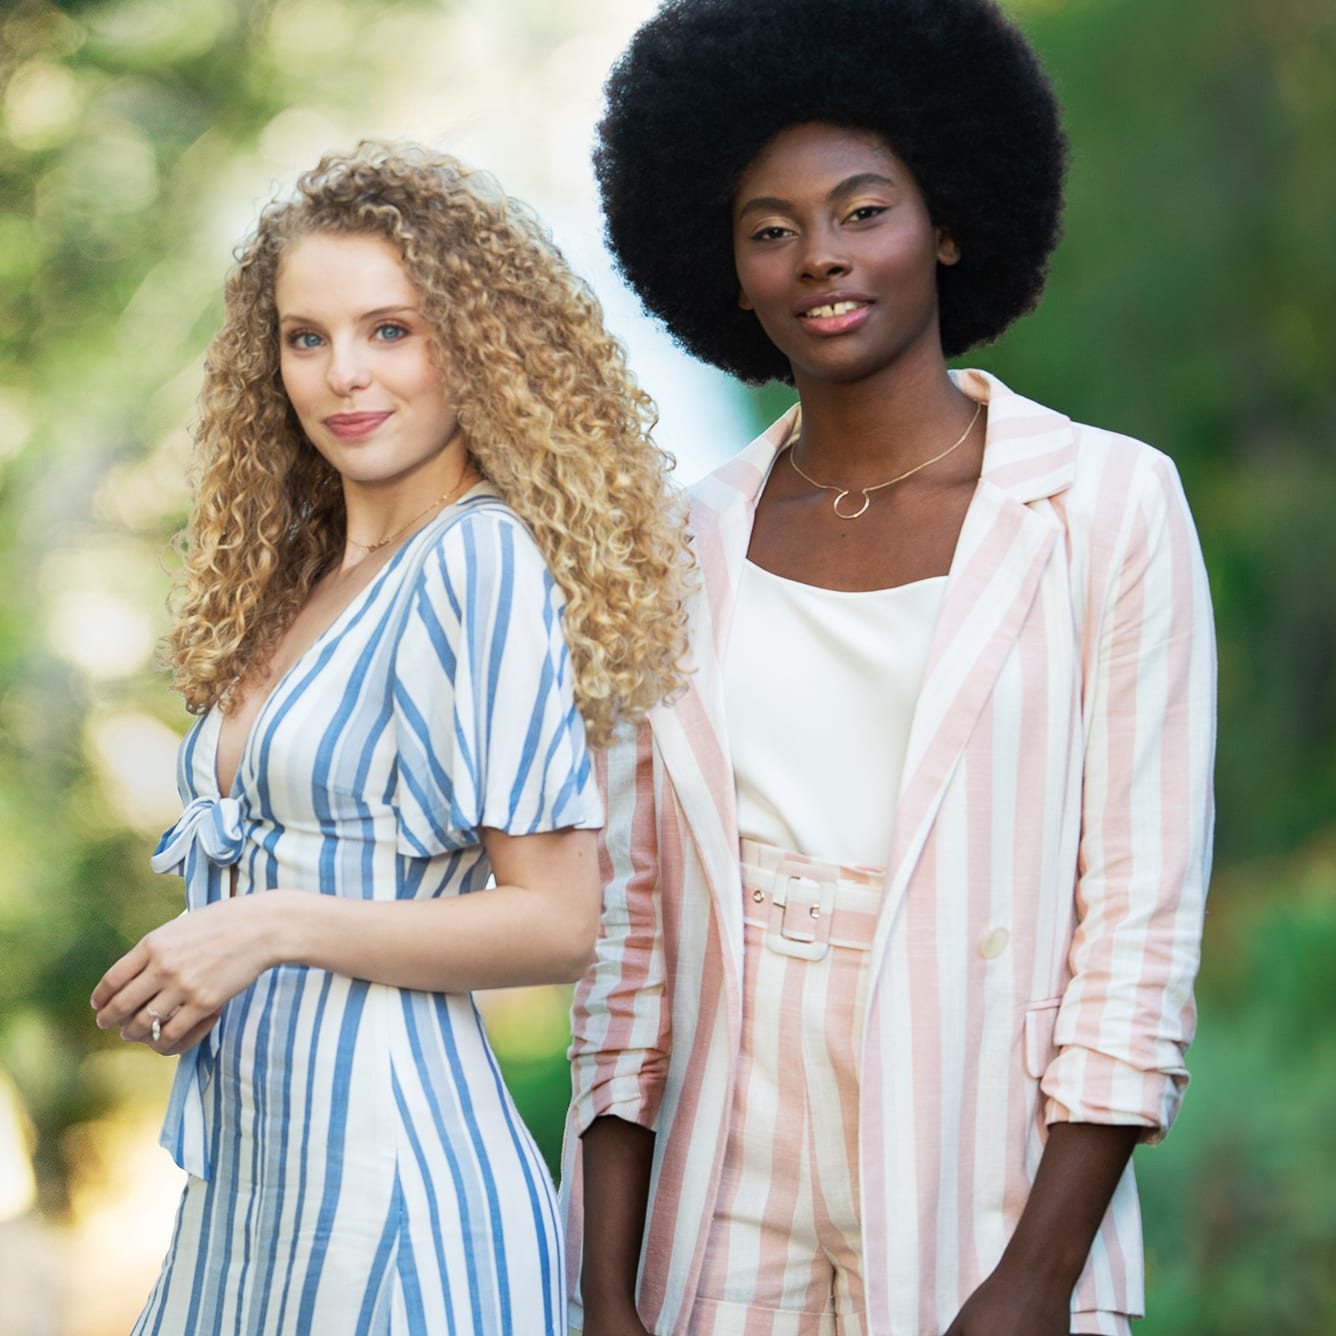 two women with curly and super curly hair